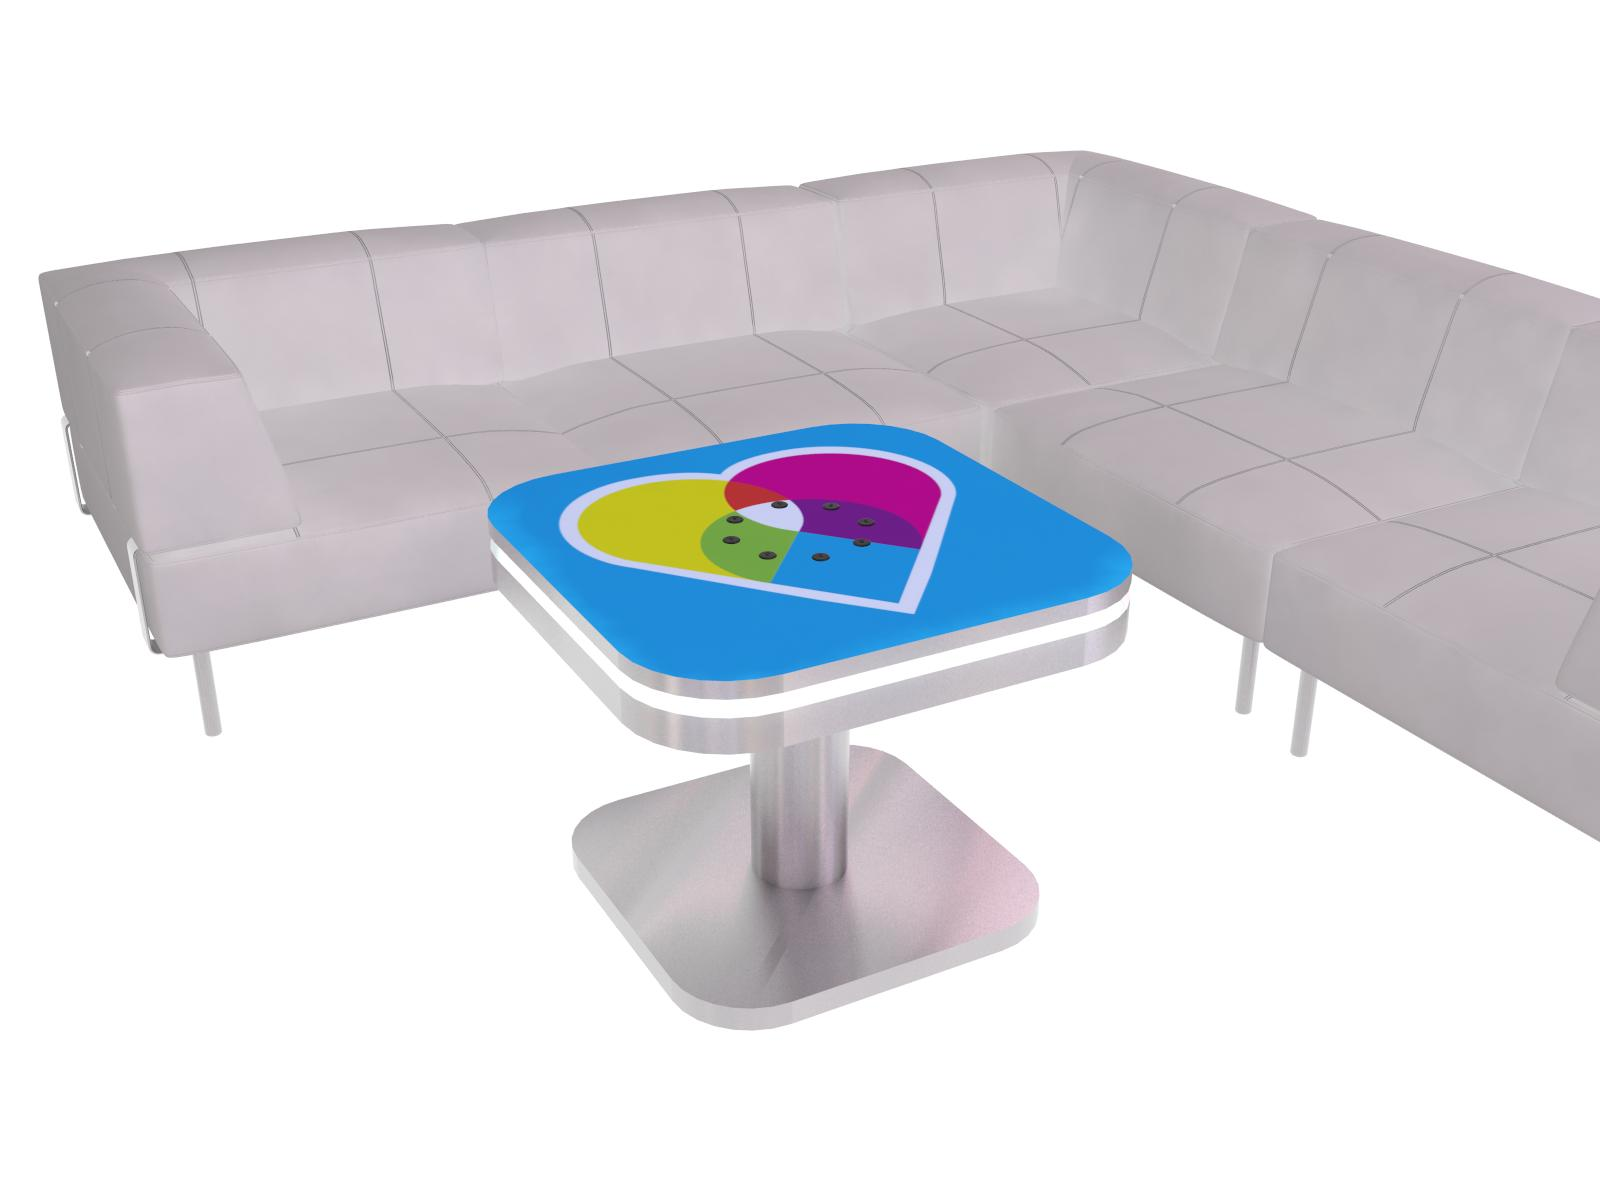 Exhibit Design Search MOD 1441 Charging Coffee Table Monitor